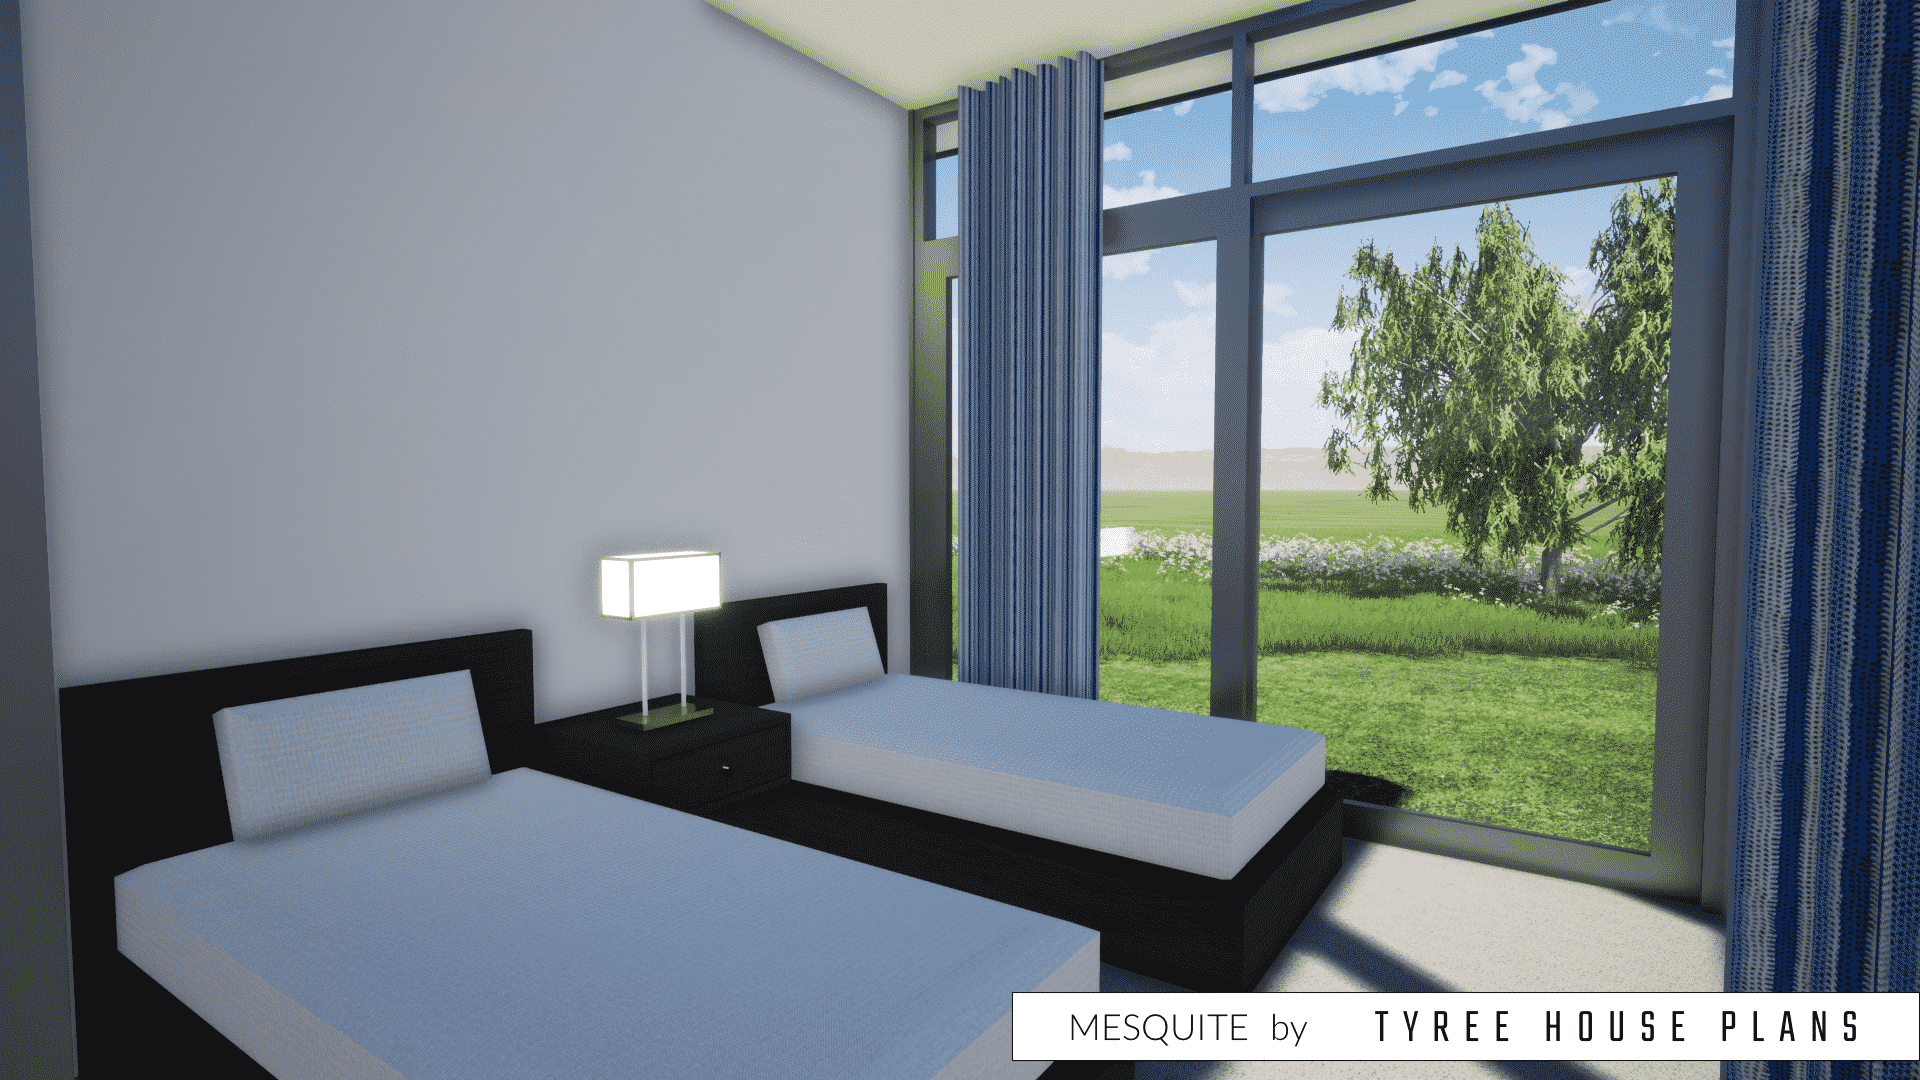 Mesquite by Tyree House Plans